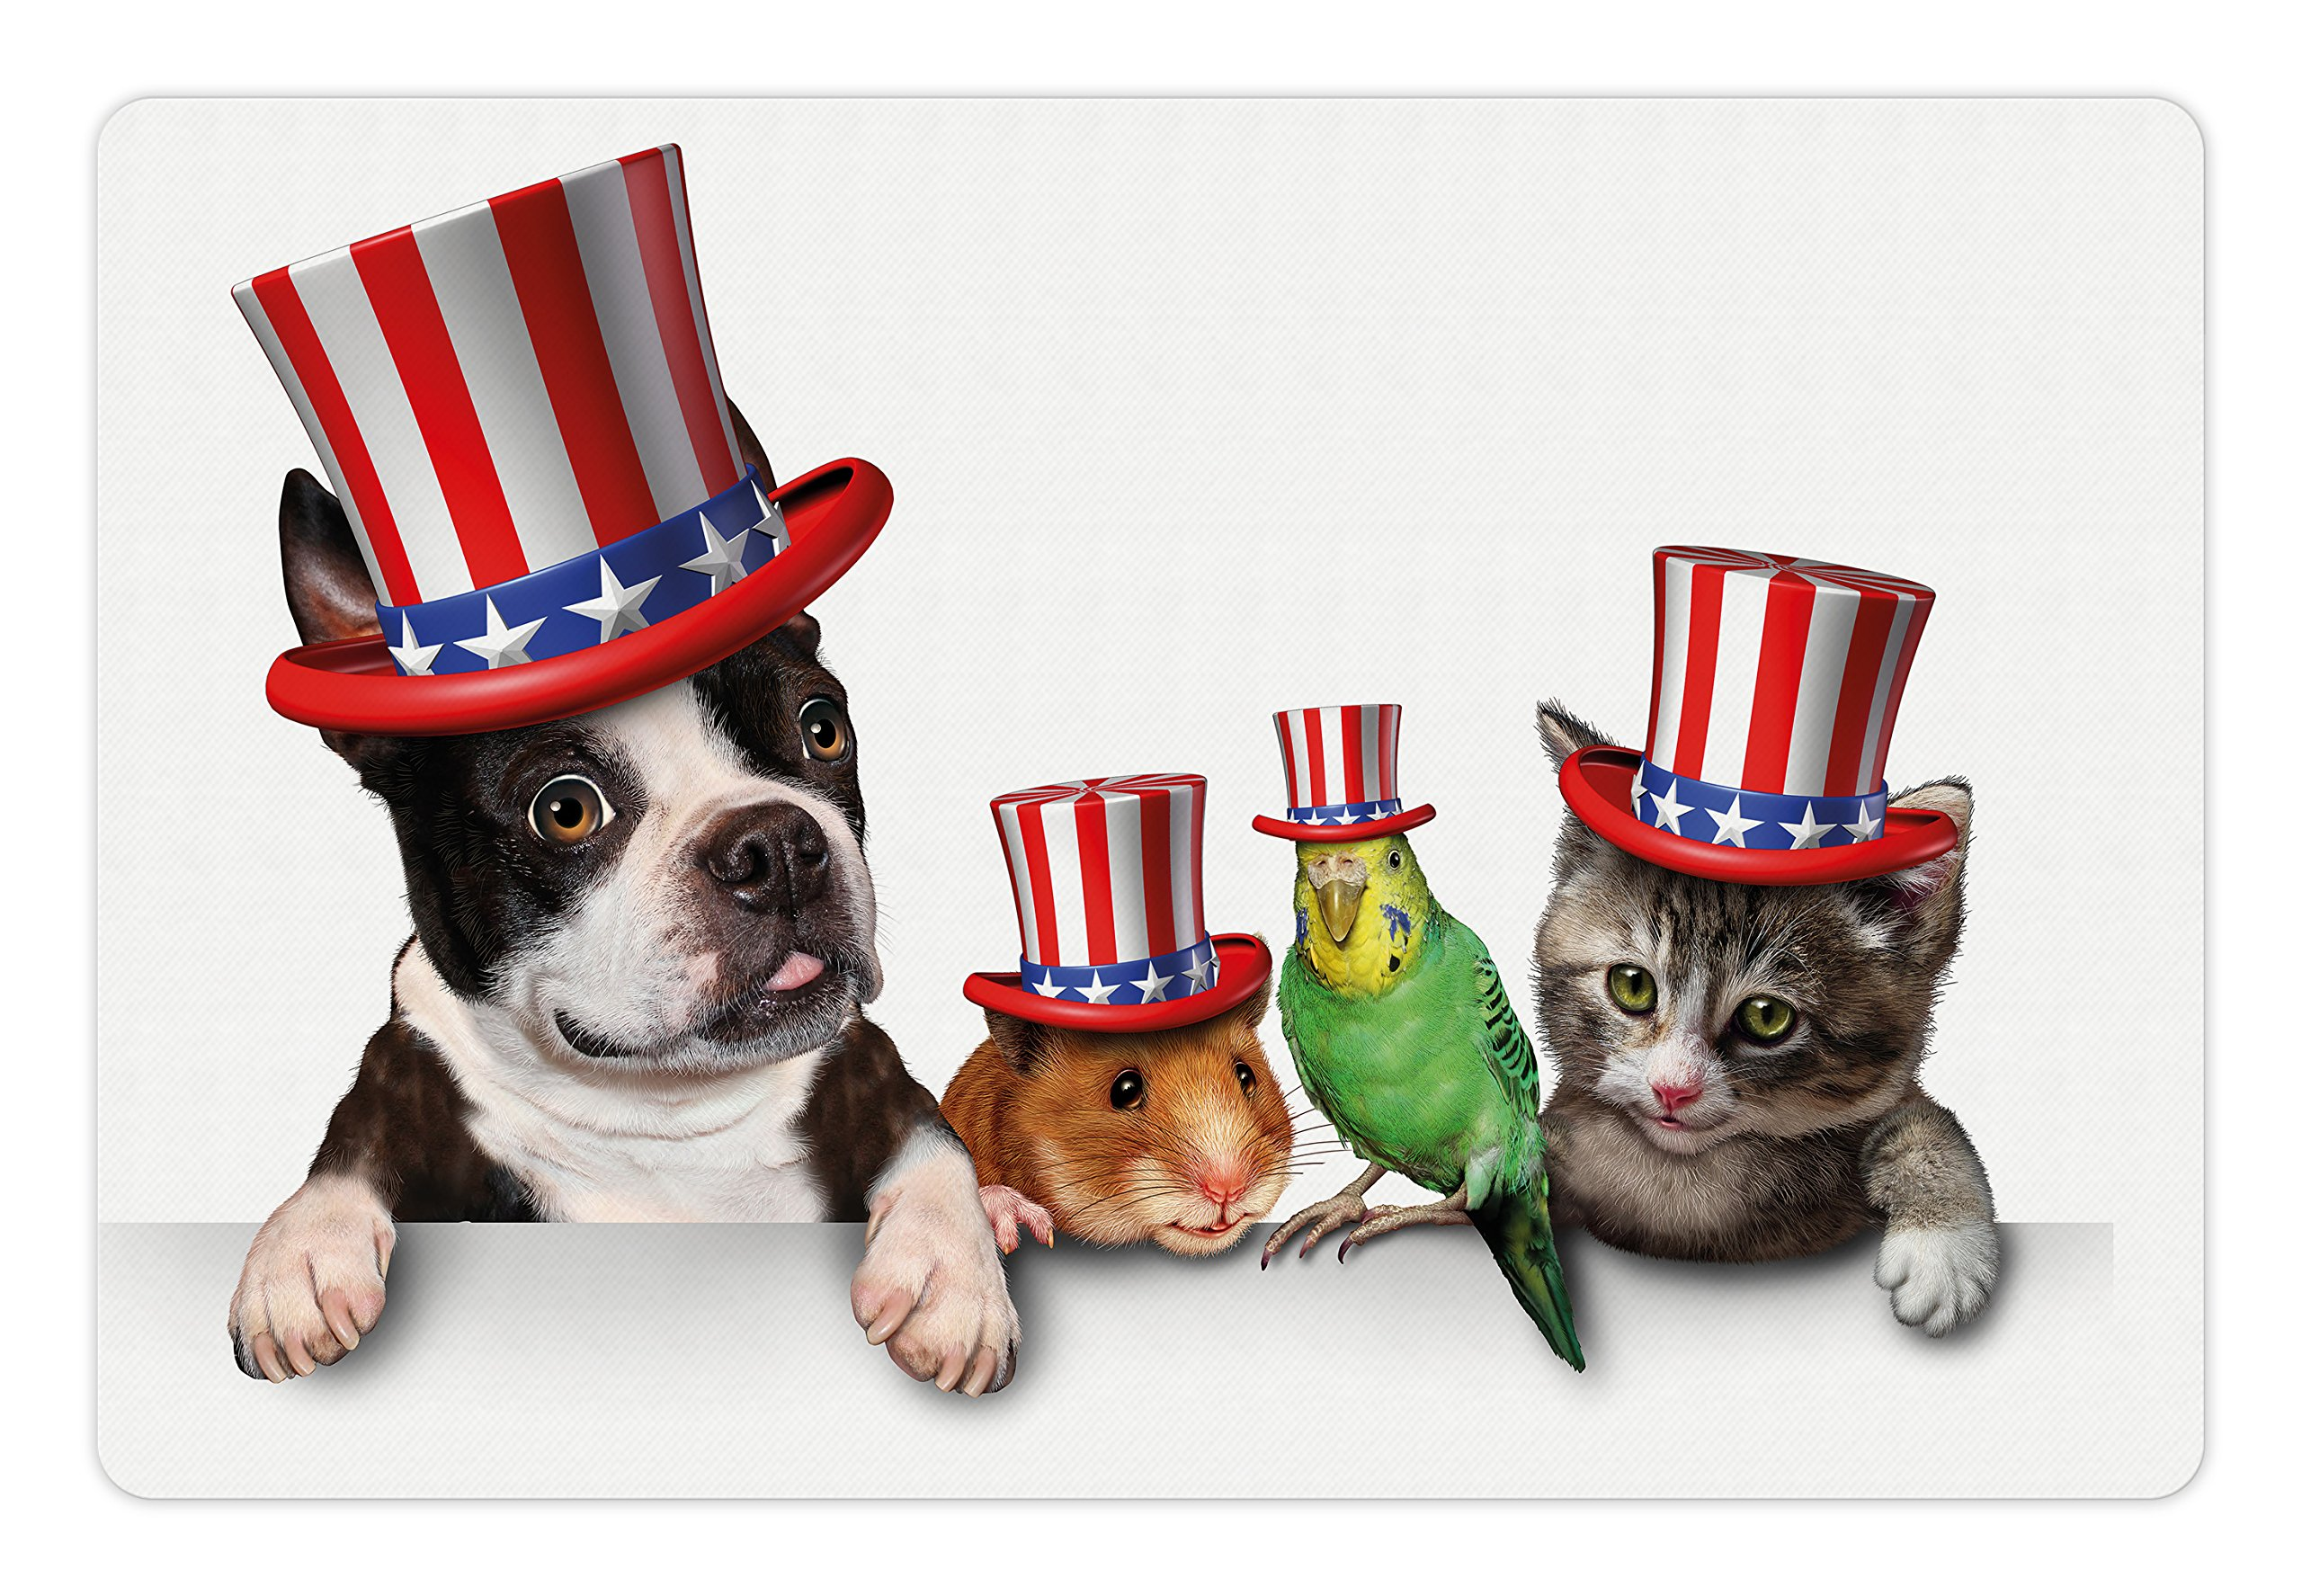 Ambesonne Fourth of July Pet Mat for Food and Water, Cute Pet Animal Dog Cat Bird and Hamster with American Hat Celebration Image, Rectangle Non-Slip Rubber Mat for Dogs and Cats, Multicolor